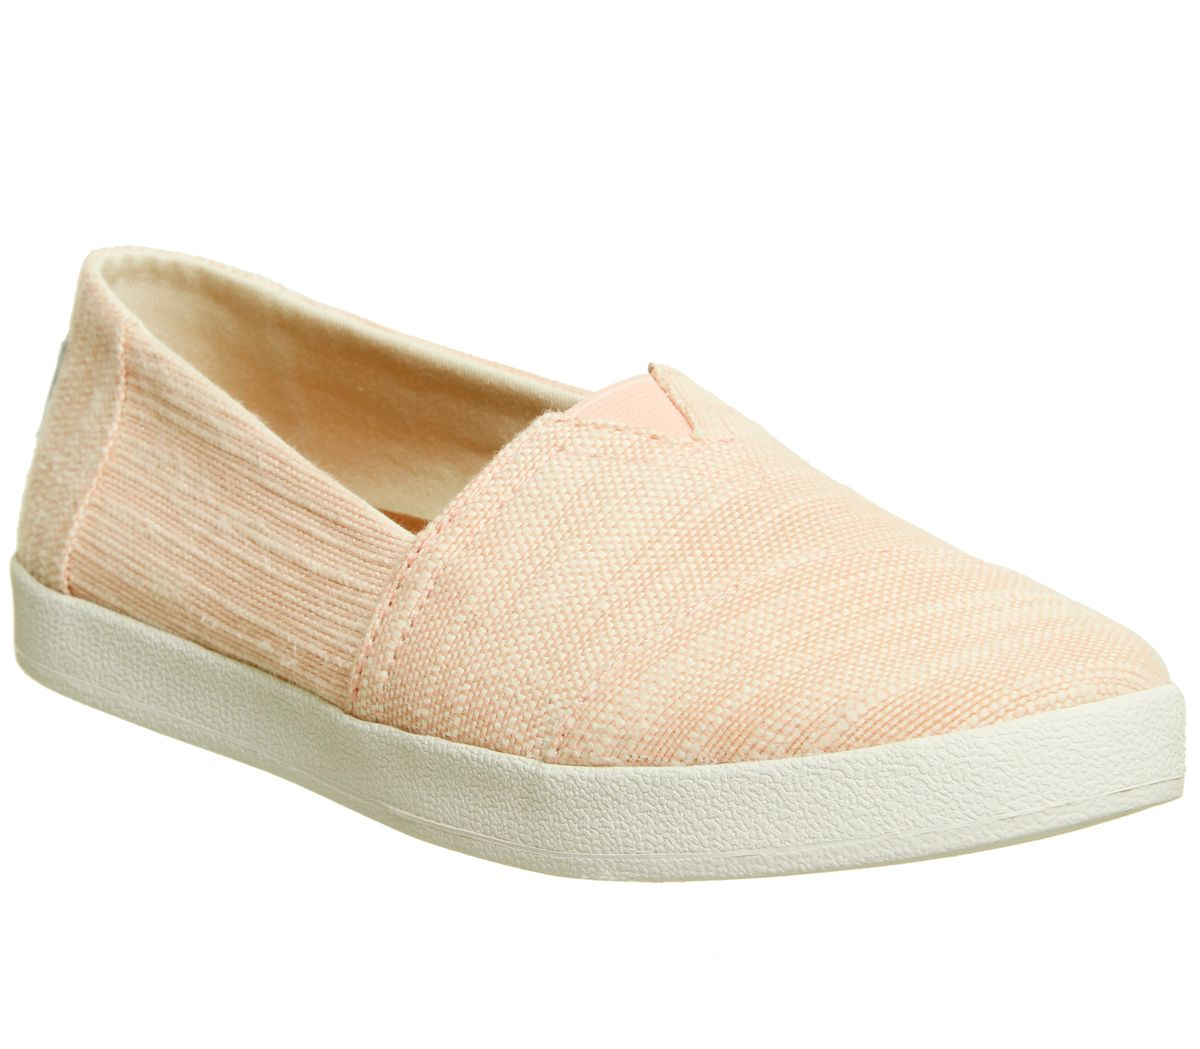 Toms Avalon Sneakers, Pink